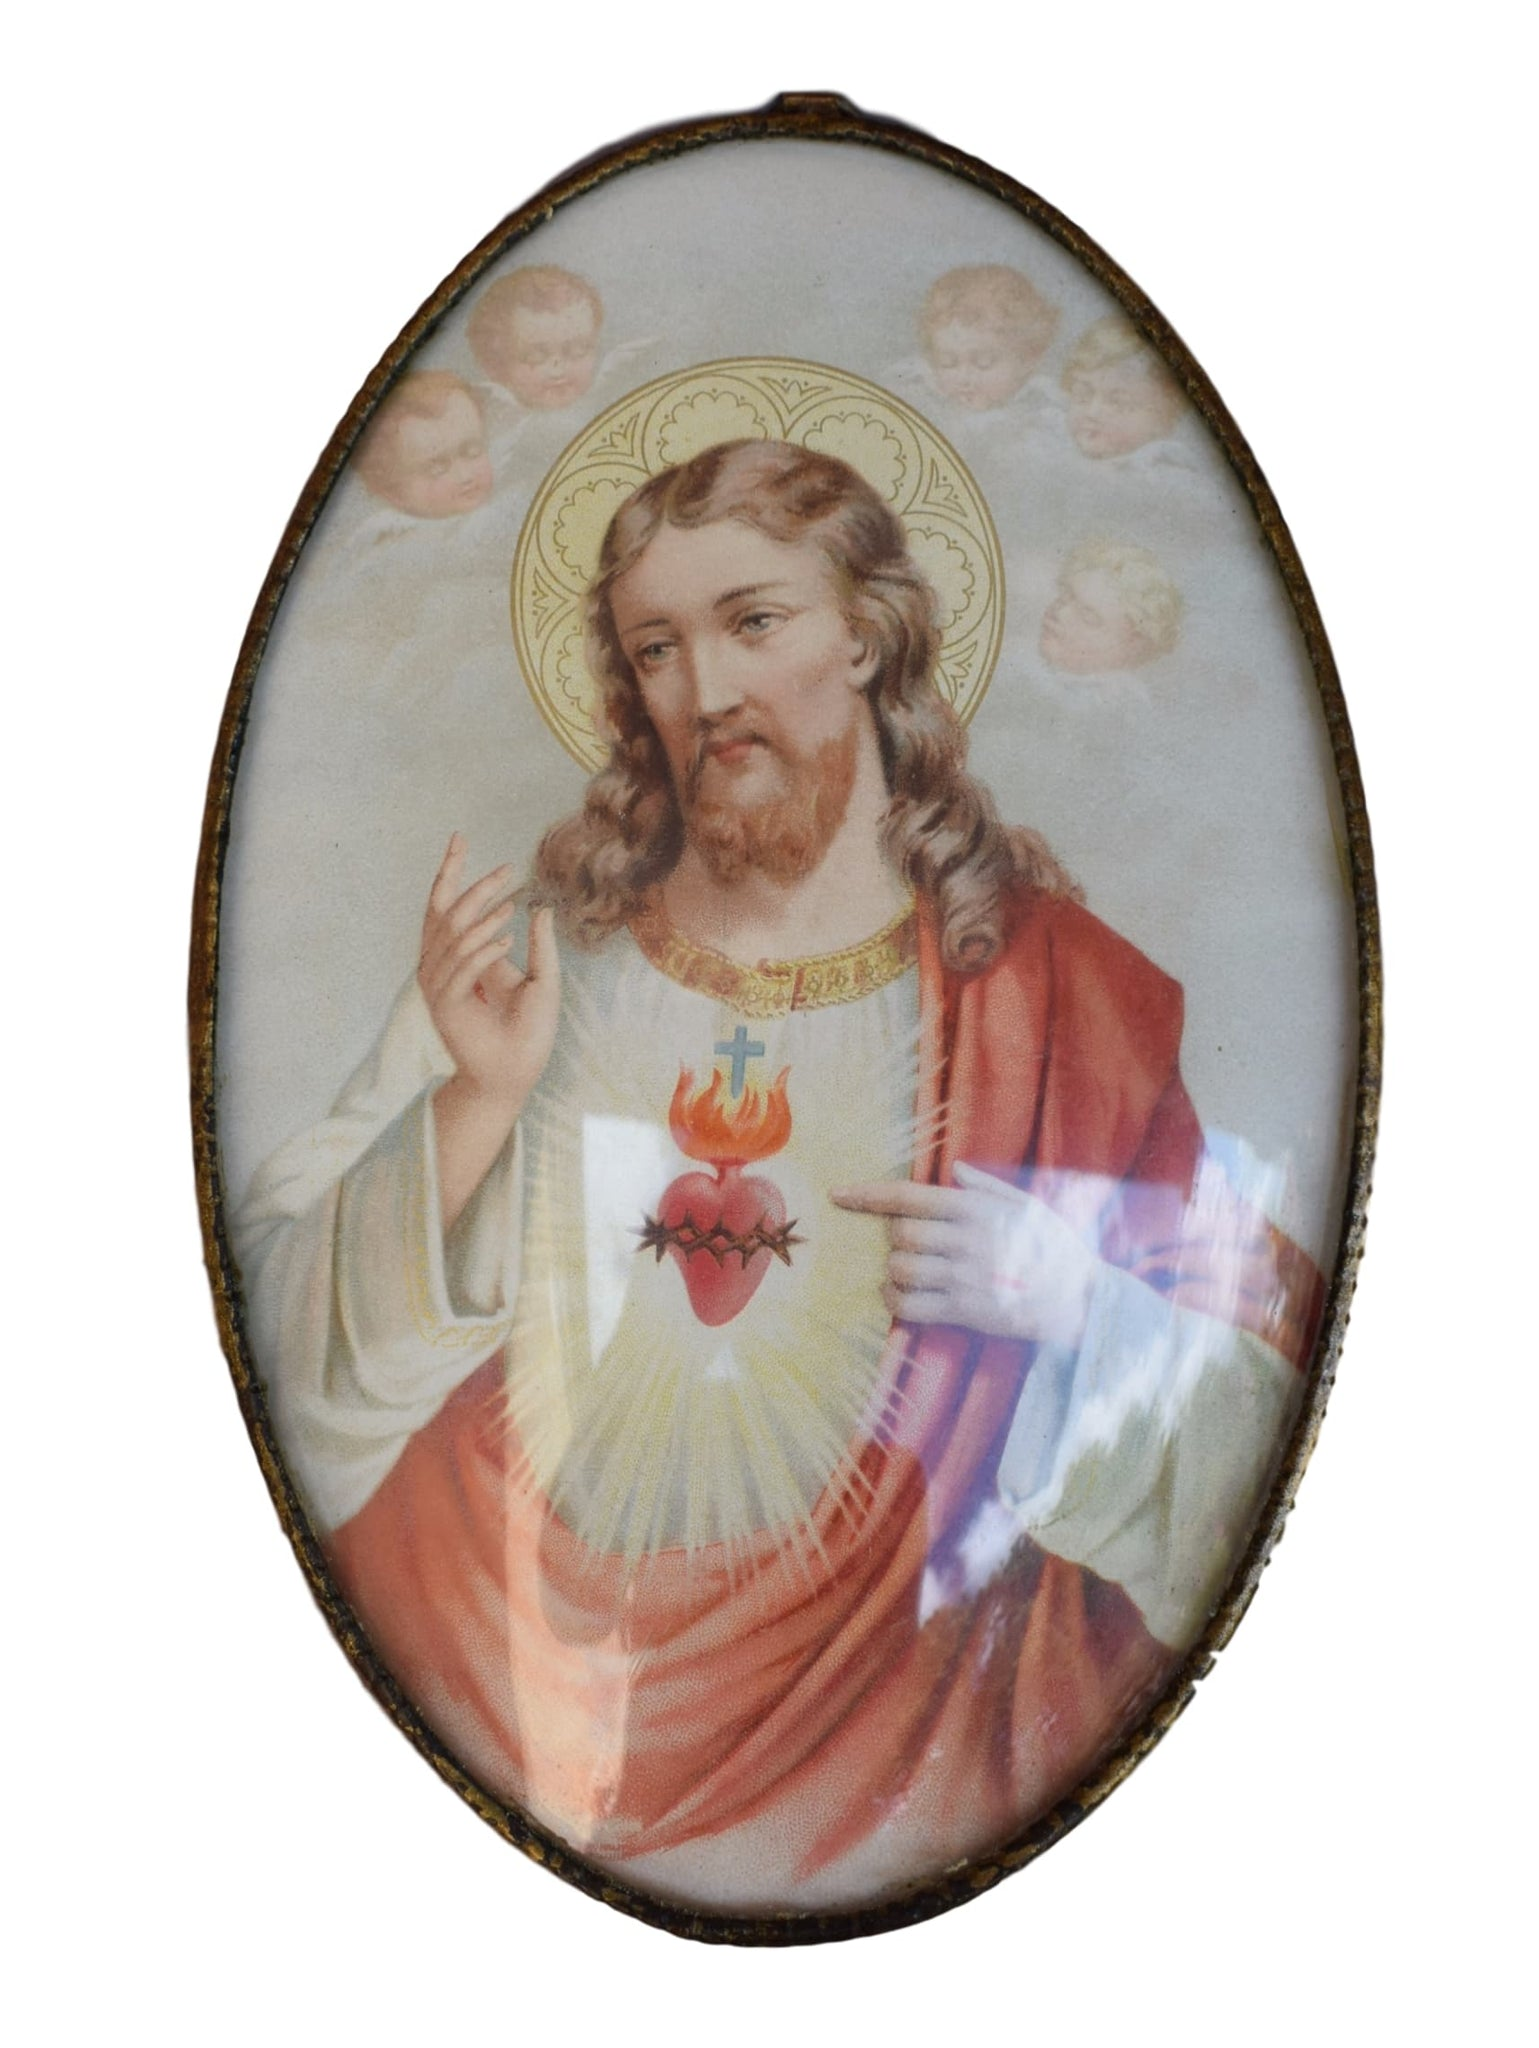 French Antique Religious Jesus Sacred Heart Wall Frame - Angel Print - Convex Glass Medallion - Communion Gift